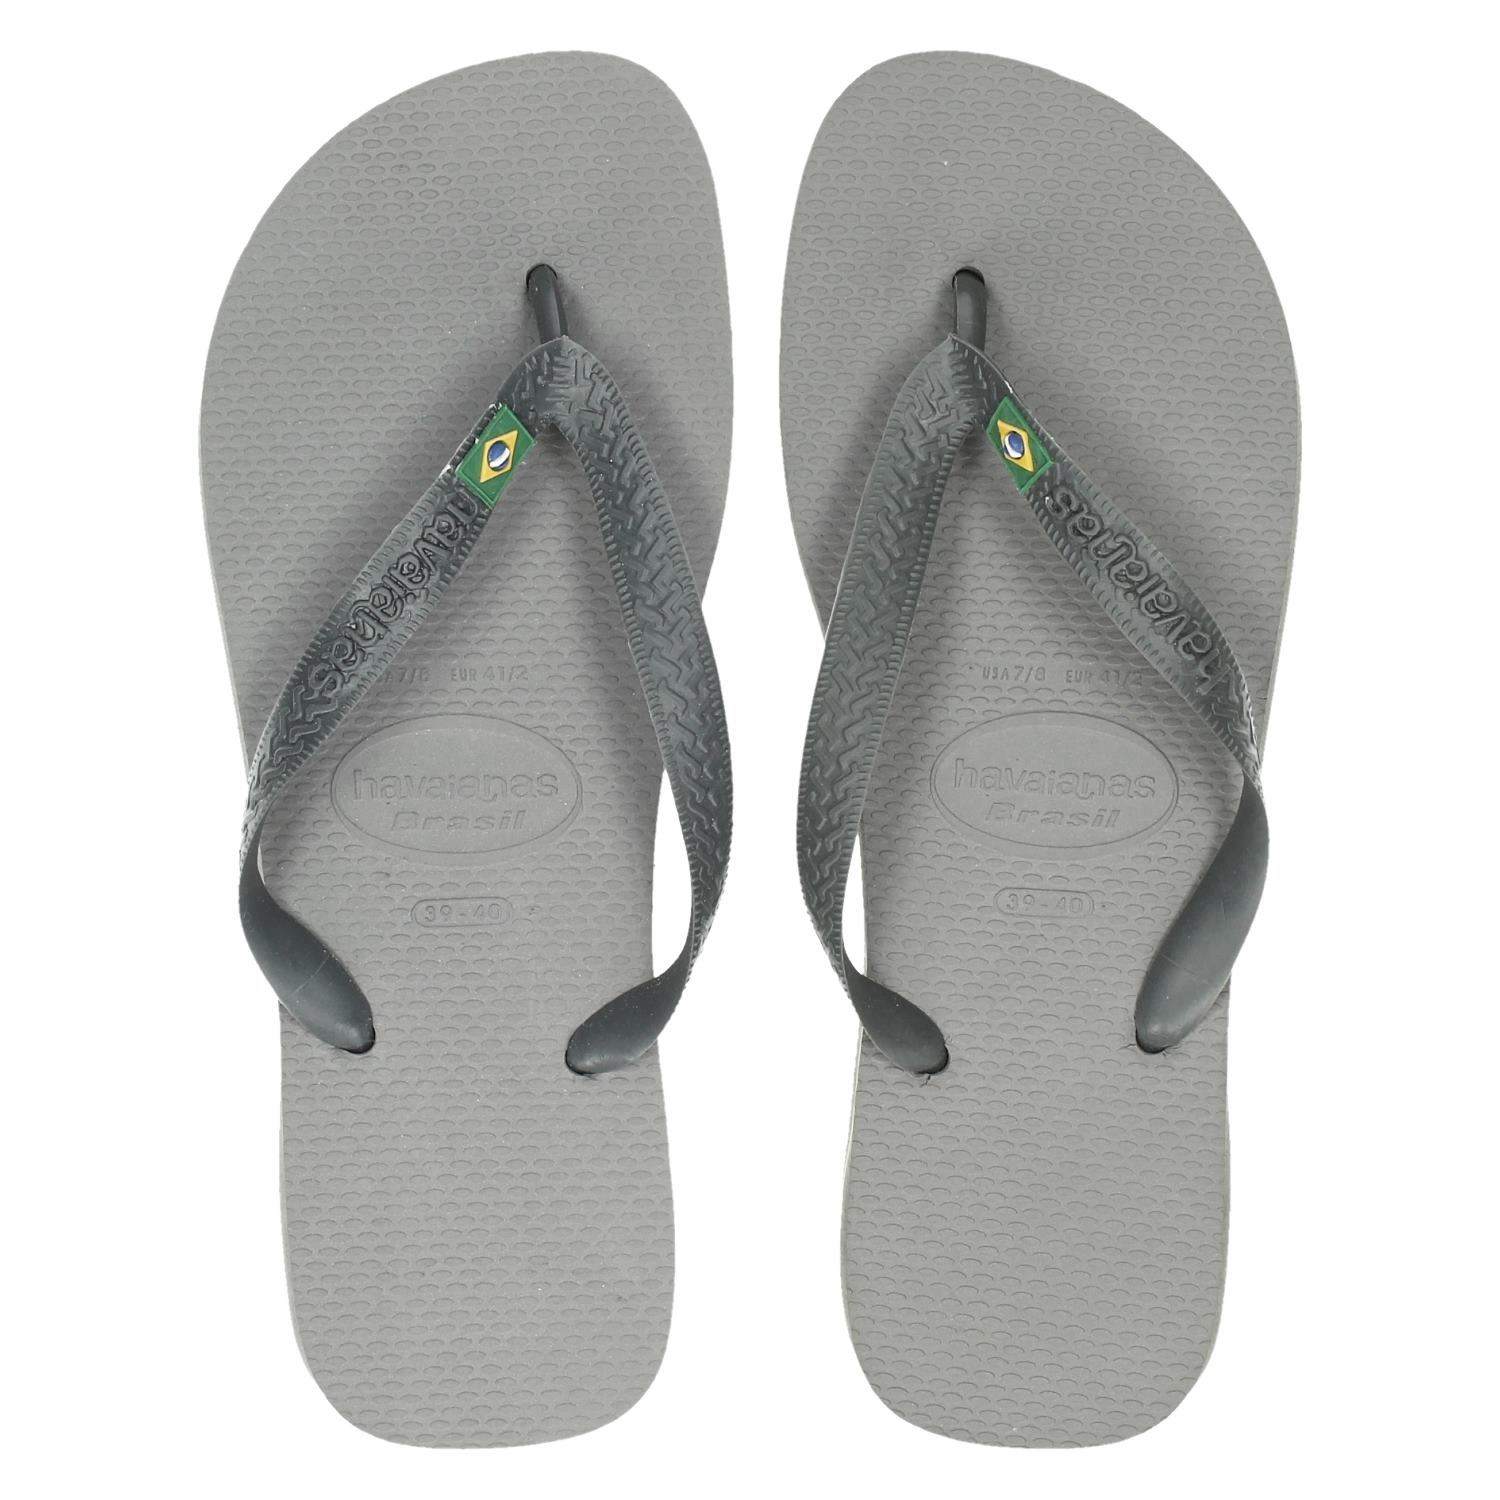 Chaussures Gris Havaianas Pour Les Hommes mBZWaAIUAy